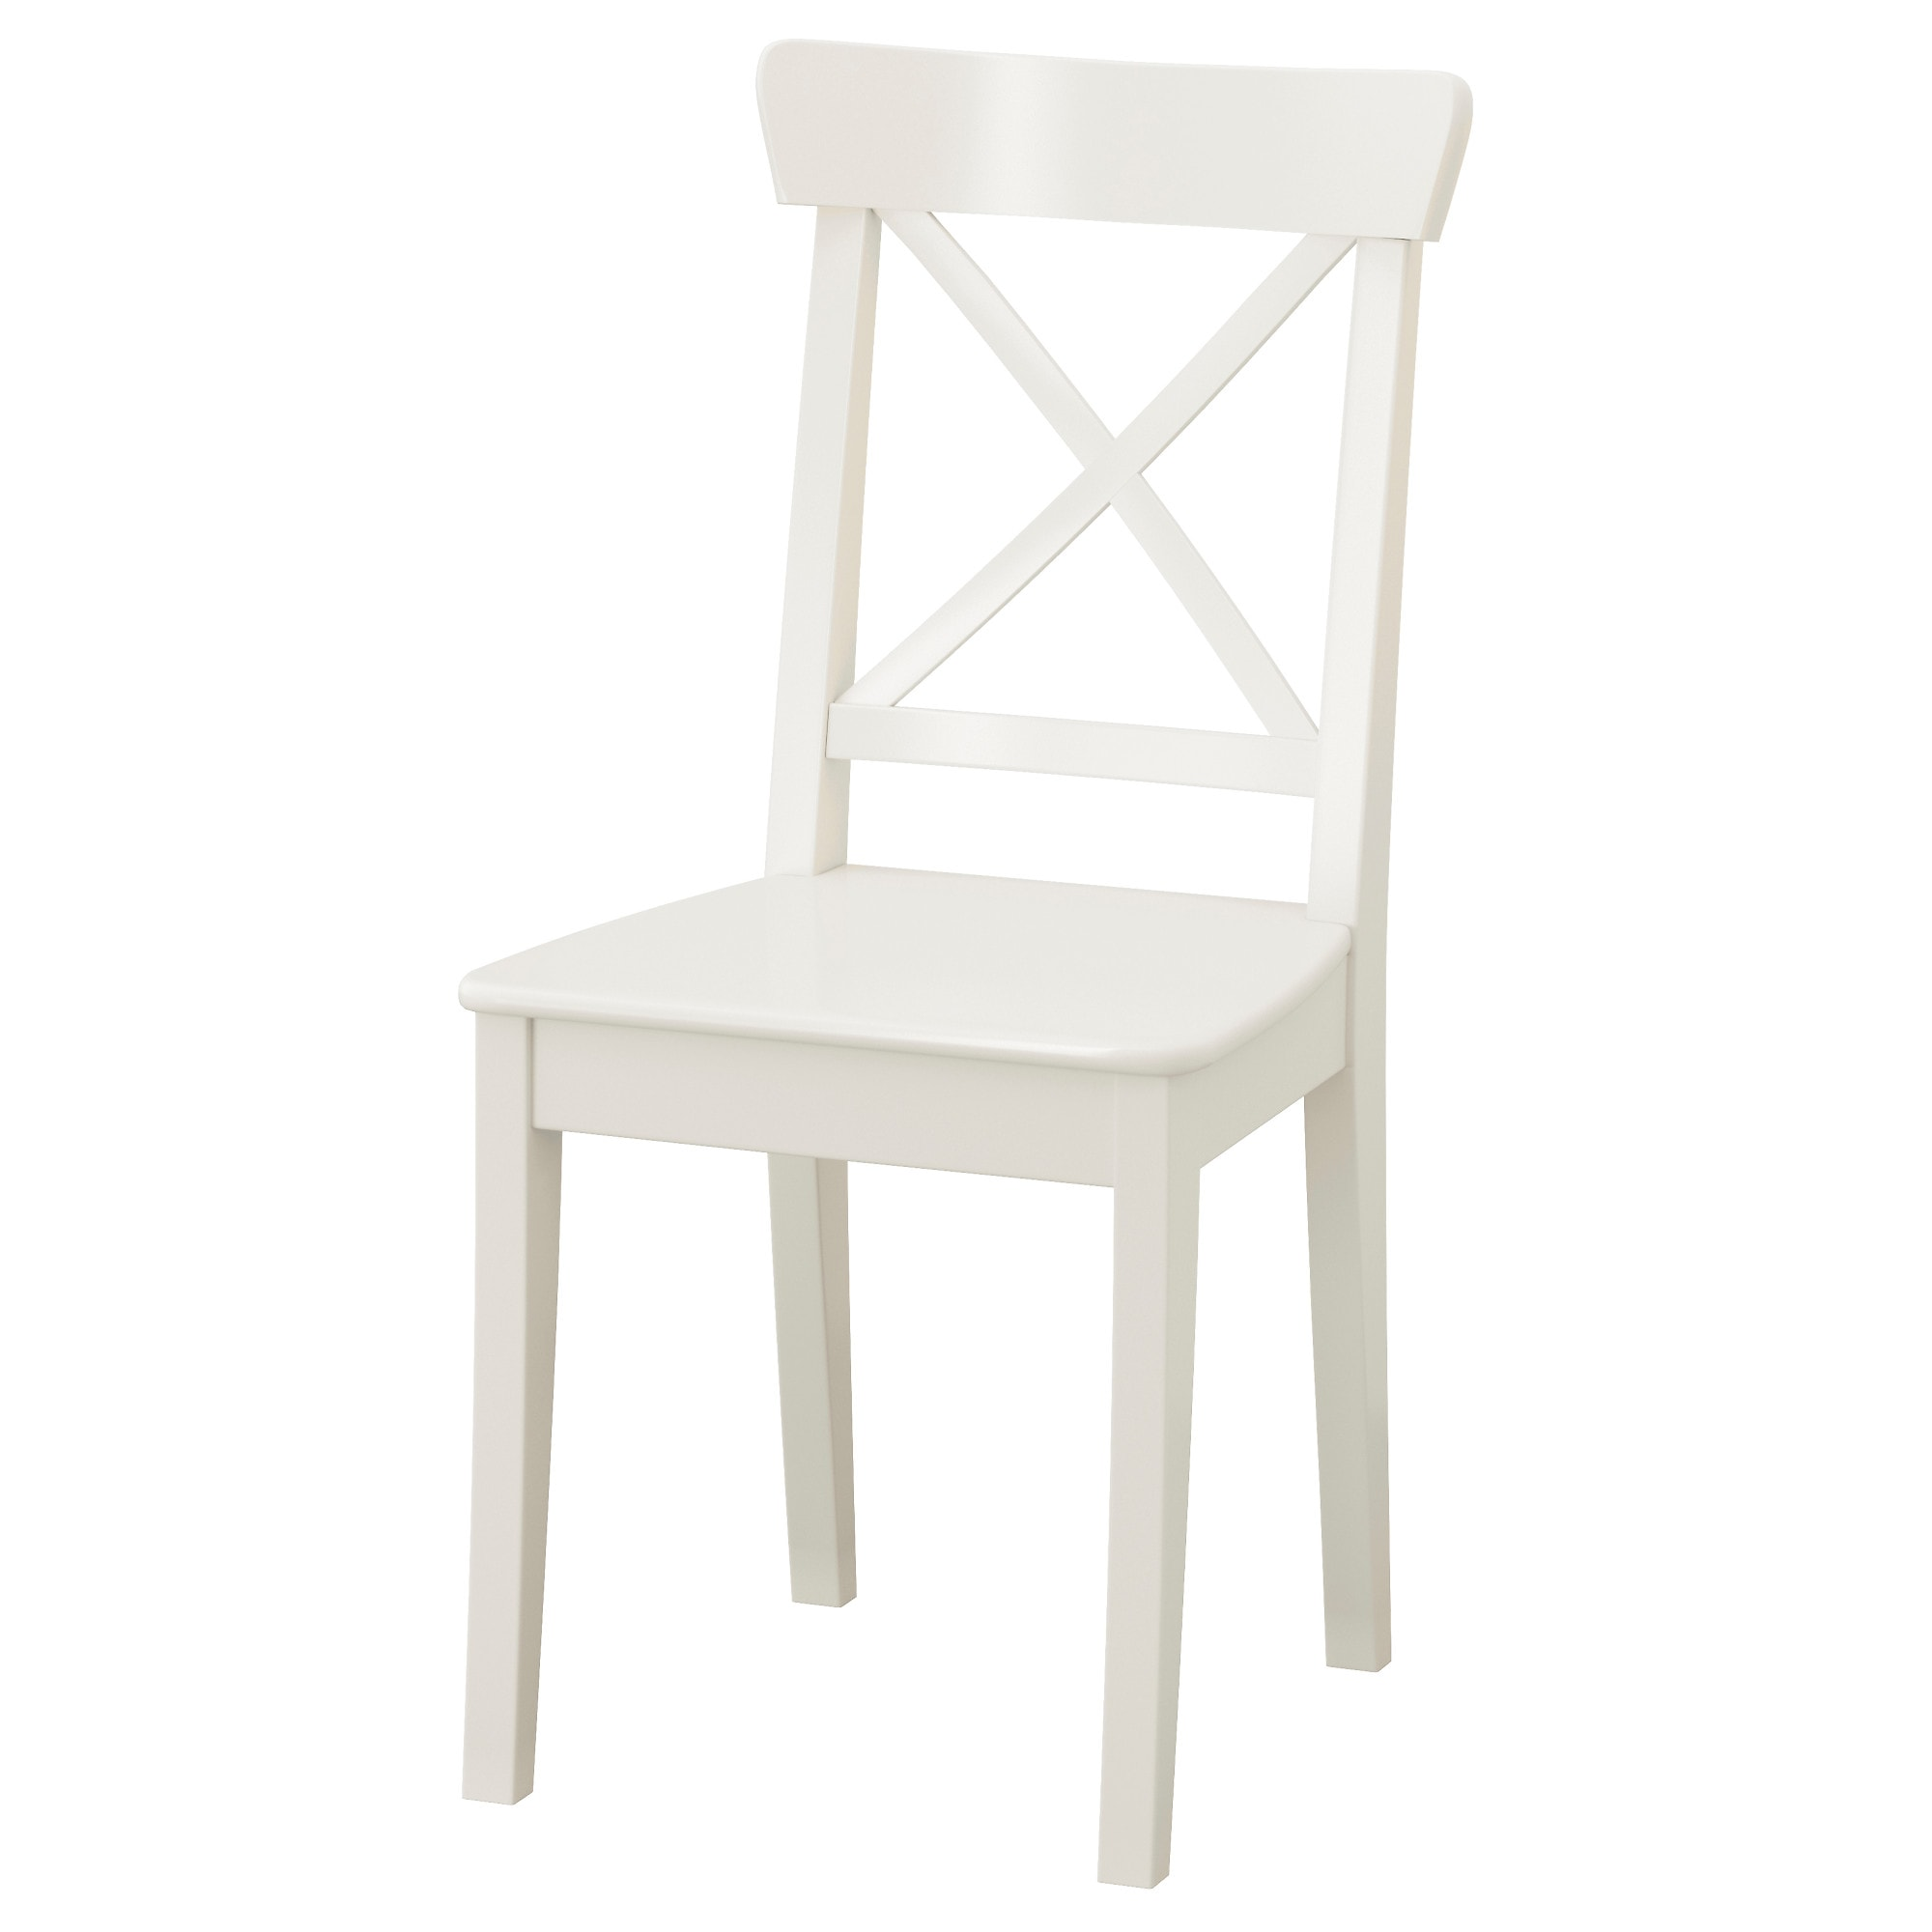 ingolf chair - ikea